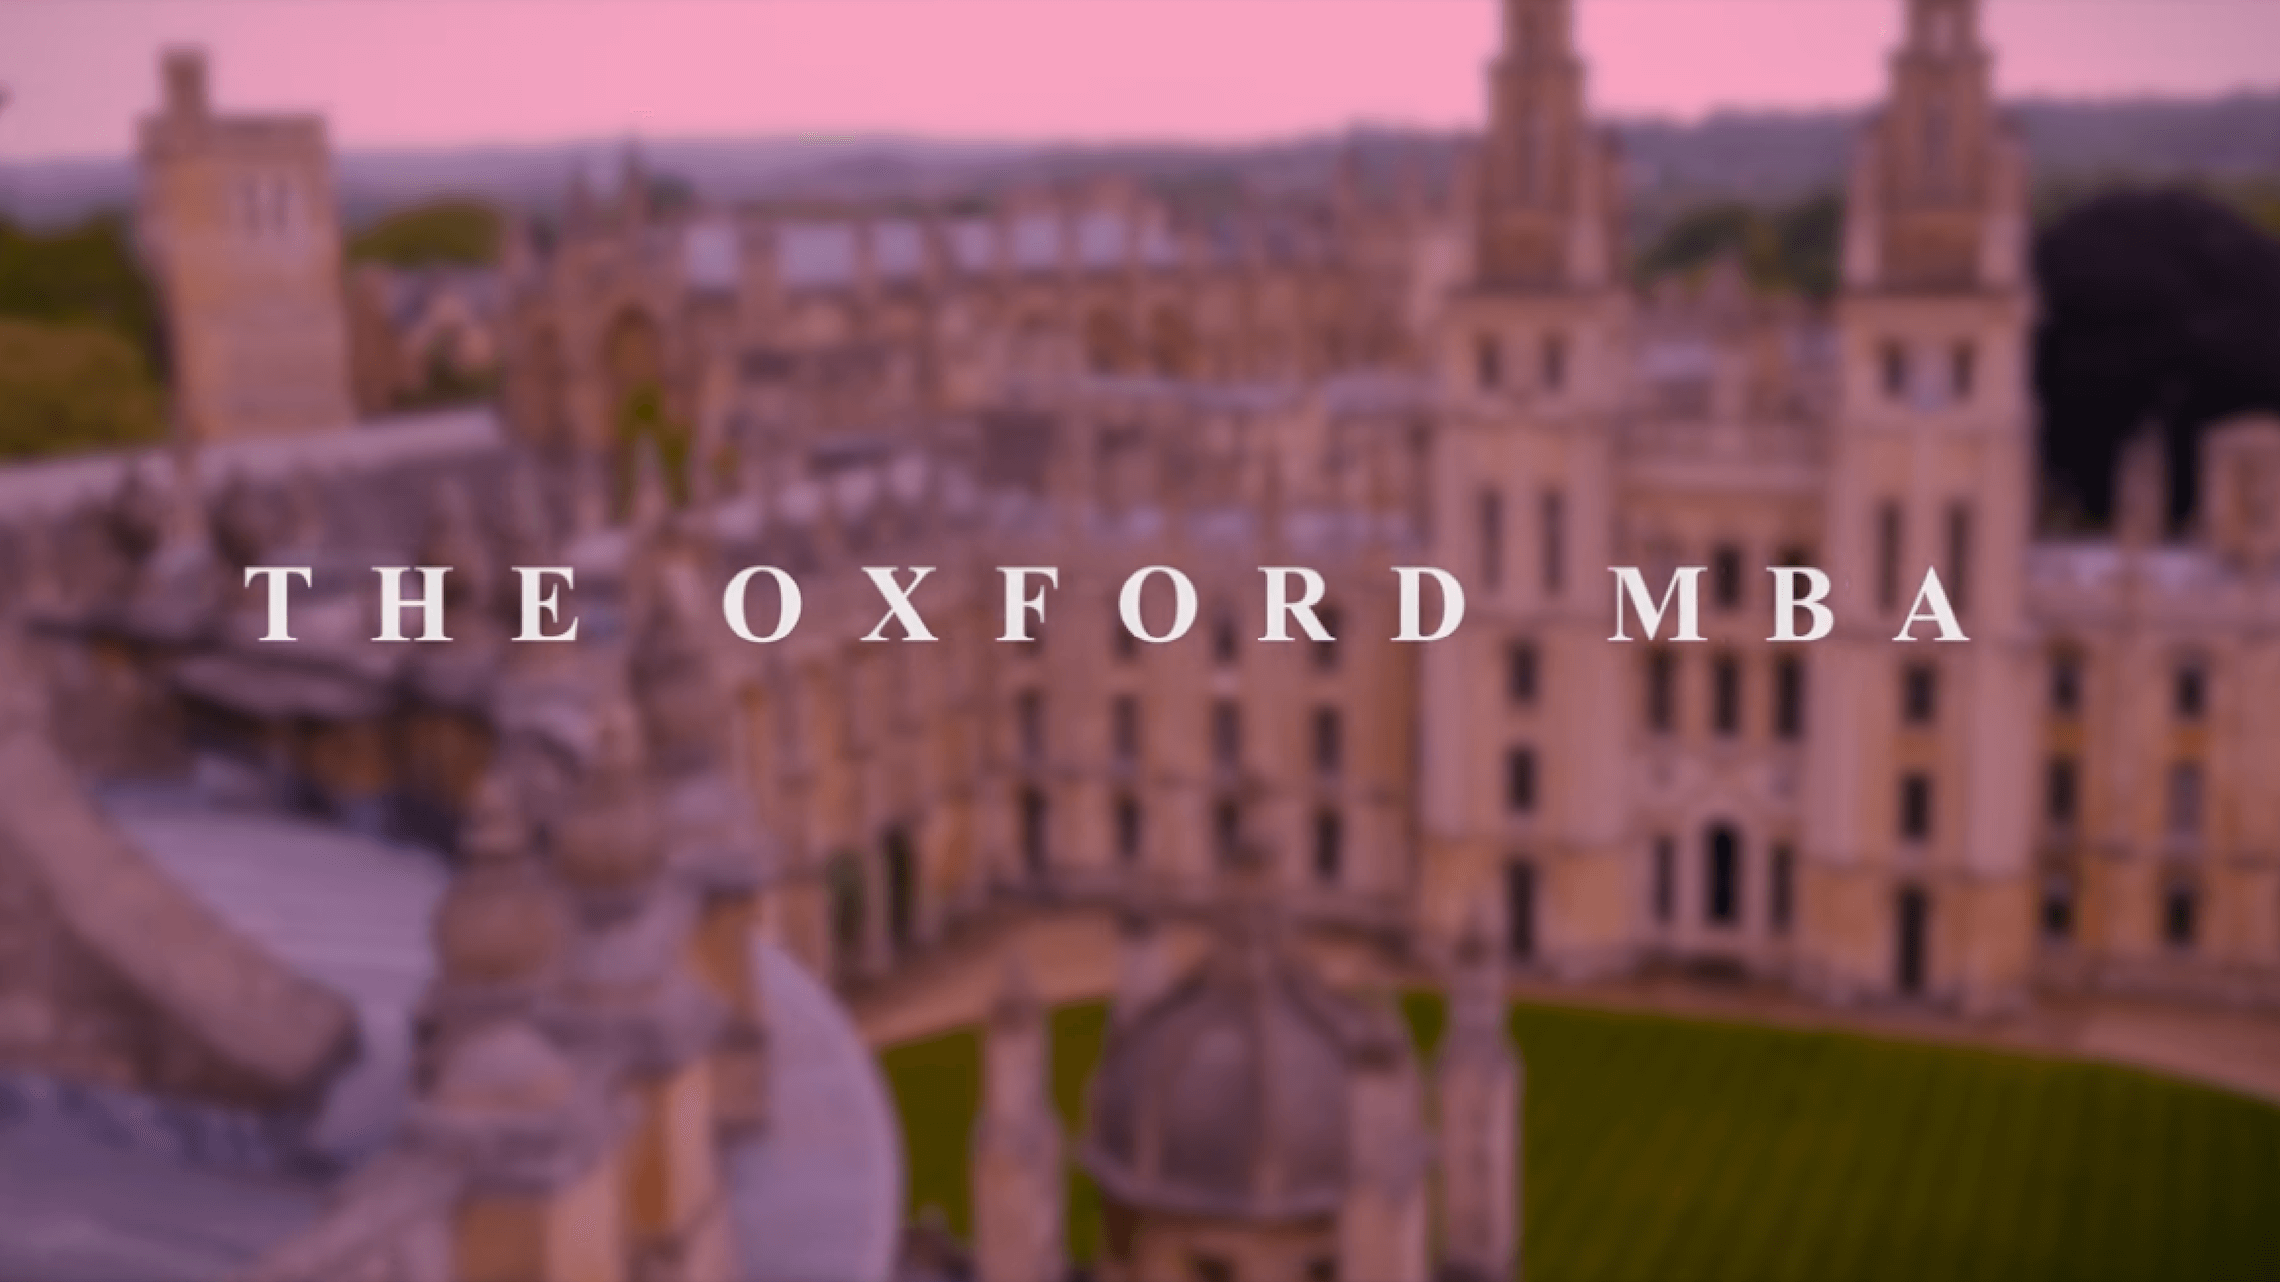 Oxford MBA Video